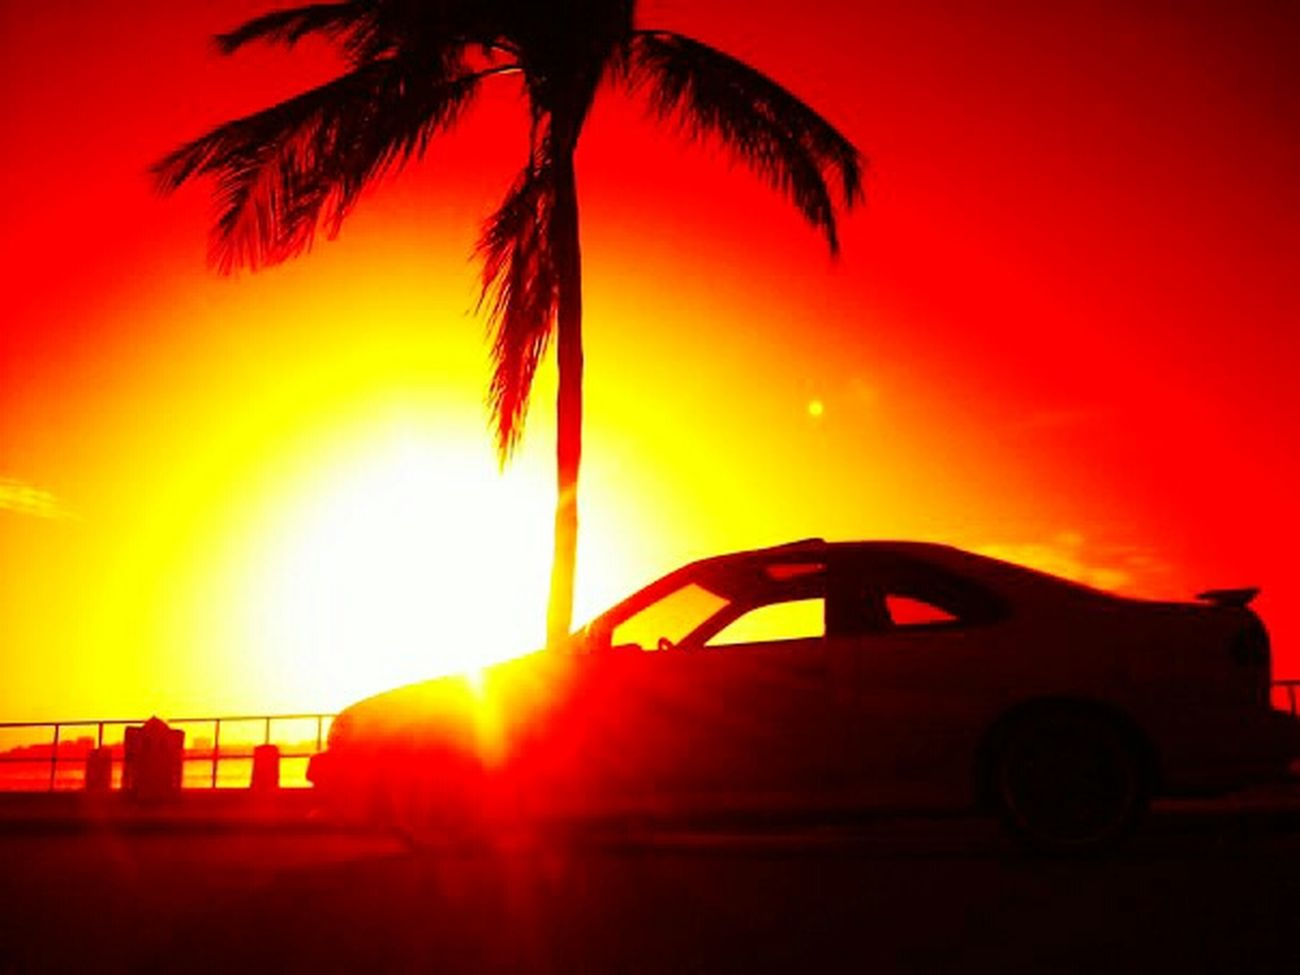 Capture The Moment Nissan Nismo  Sunrise Silhouette Enjoying The Sun Sunrise_sunsets_aroundworld My First Car Miamivice EyeEm Gallery Nofilter#noedit Miamiphotographer #miamiflorida #miamifashion #miaminights #miamiliving #miamistyle #miamibound #miamibeach #miamilife #brickell #wynwood #coralgables #sobe #igersmiami #ilovemiami #illgrammers #ig_masterpiece #incredible_shot #supremeshooters #photoofthe